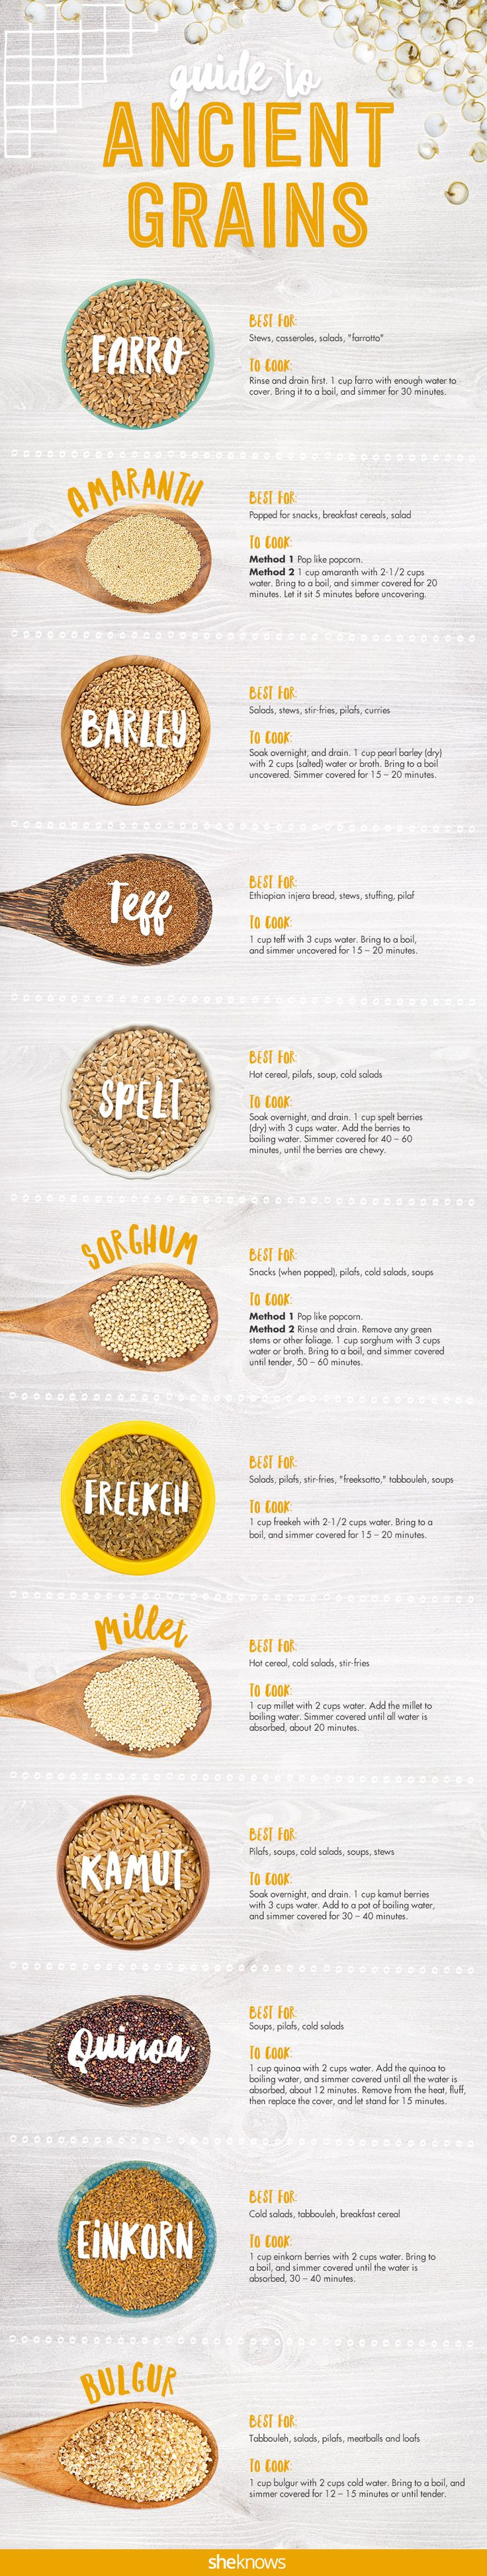 Unsure Of How To Cook Different Grains? From Barley To Quinoa, You Can Now